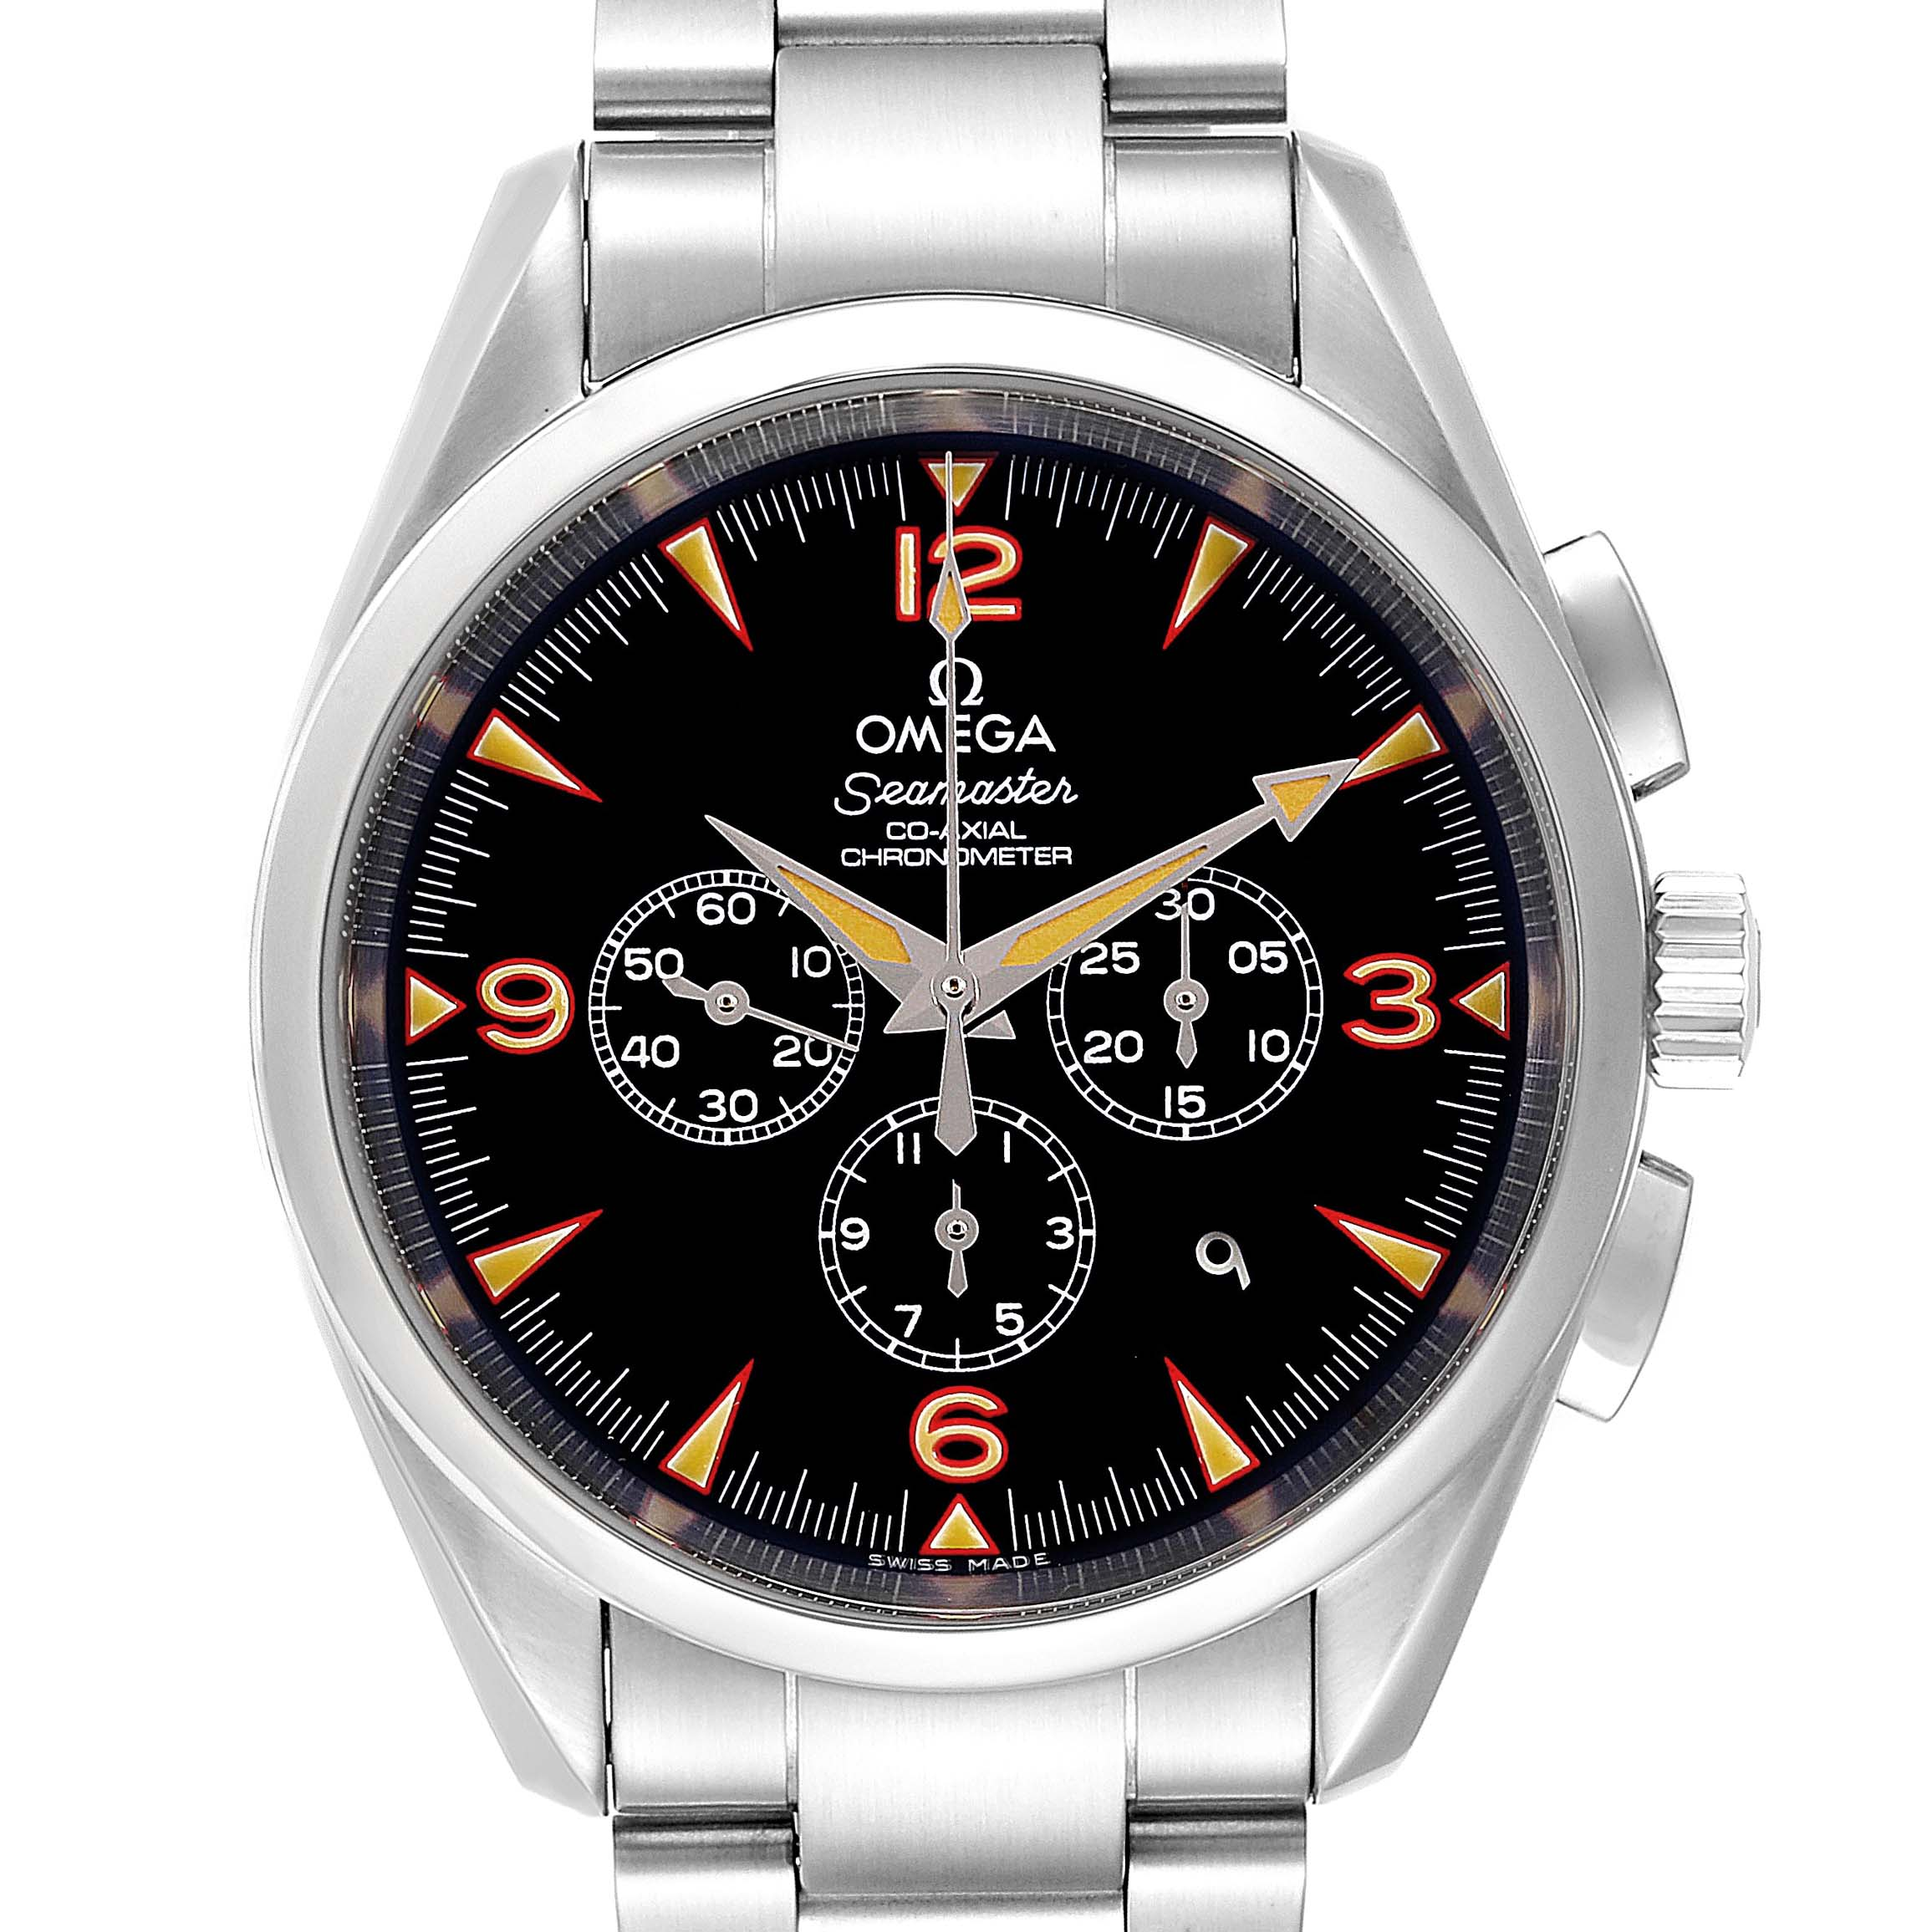 Omega Aqua Terra Railmaster China Explorer LE Watch 2512.54.00 Box Card